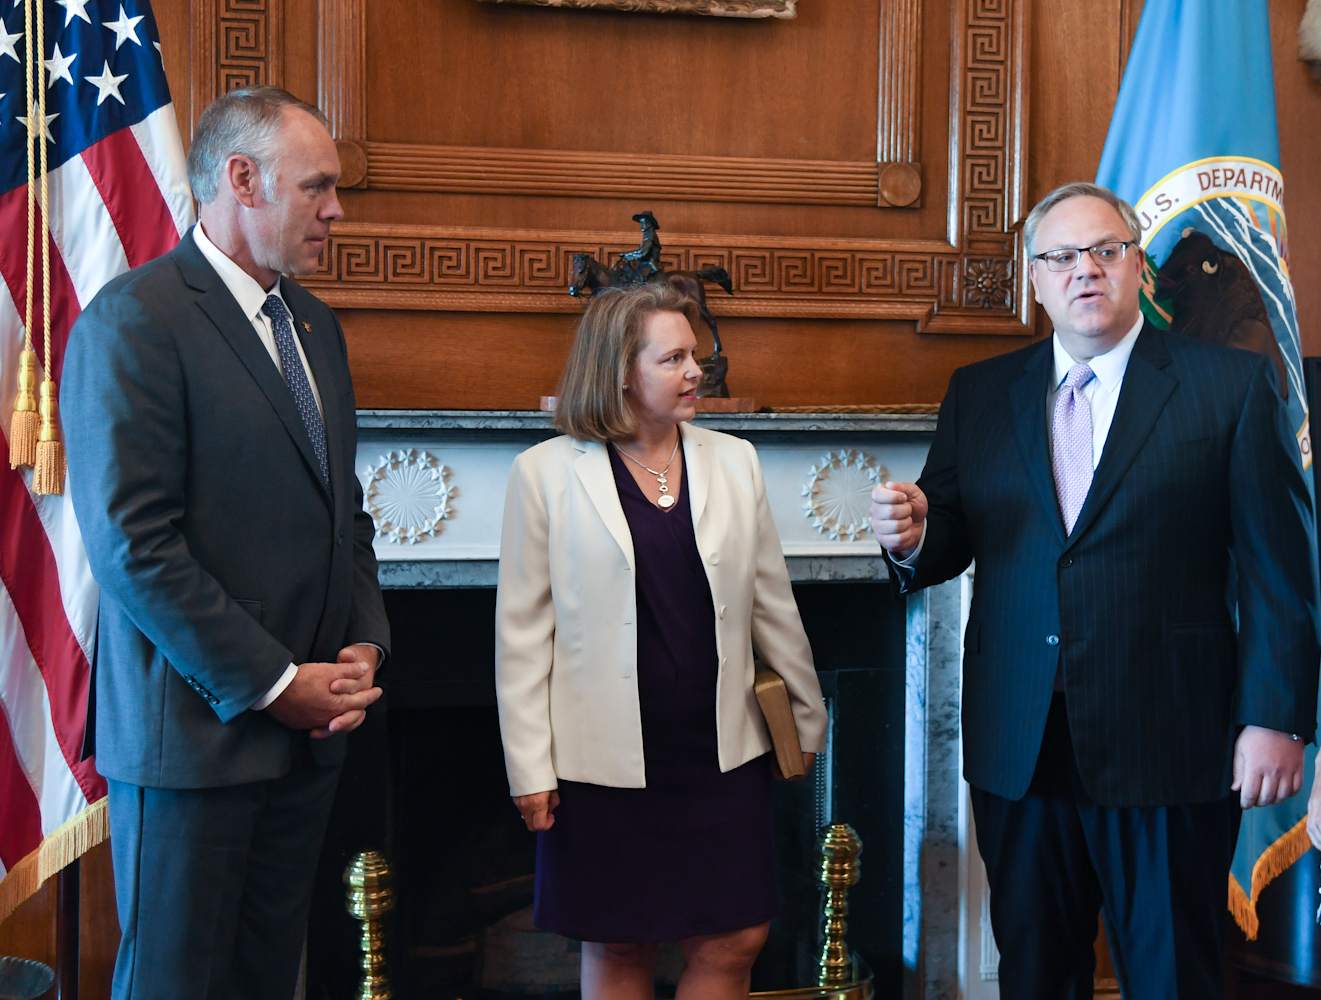 August 1st, 2017. PICTURED:  Former Interior Secretary Ryan Zinke (left) stands with newly-sworn in Deputy Sec., and now current Interior Secretary David Bernhardt (right).